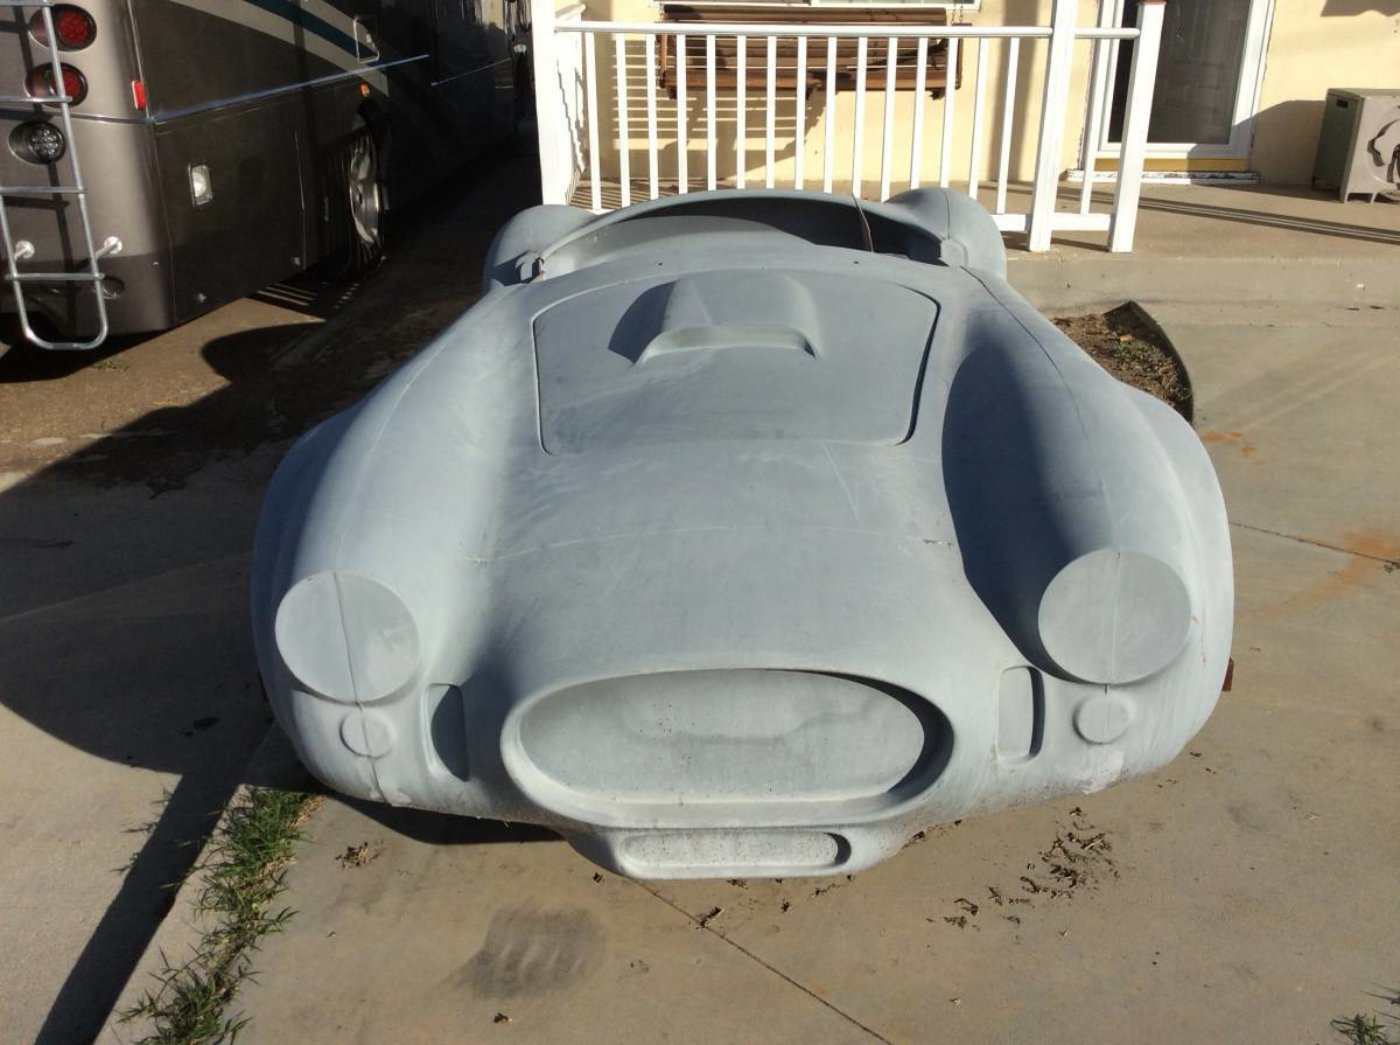 Cheap Cobra body for sale on Craigslist | ReinCarNation Magazine